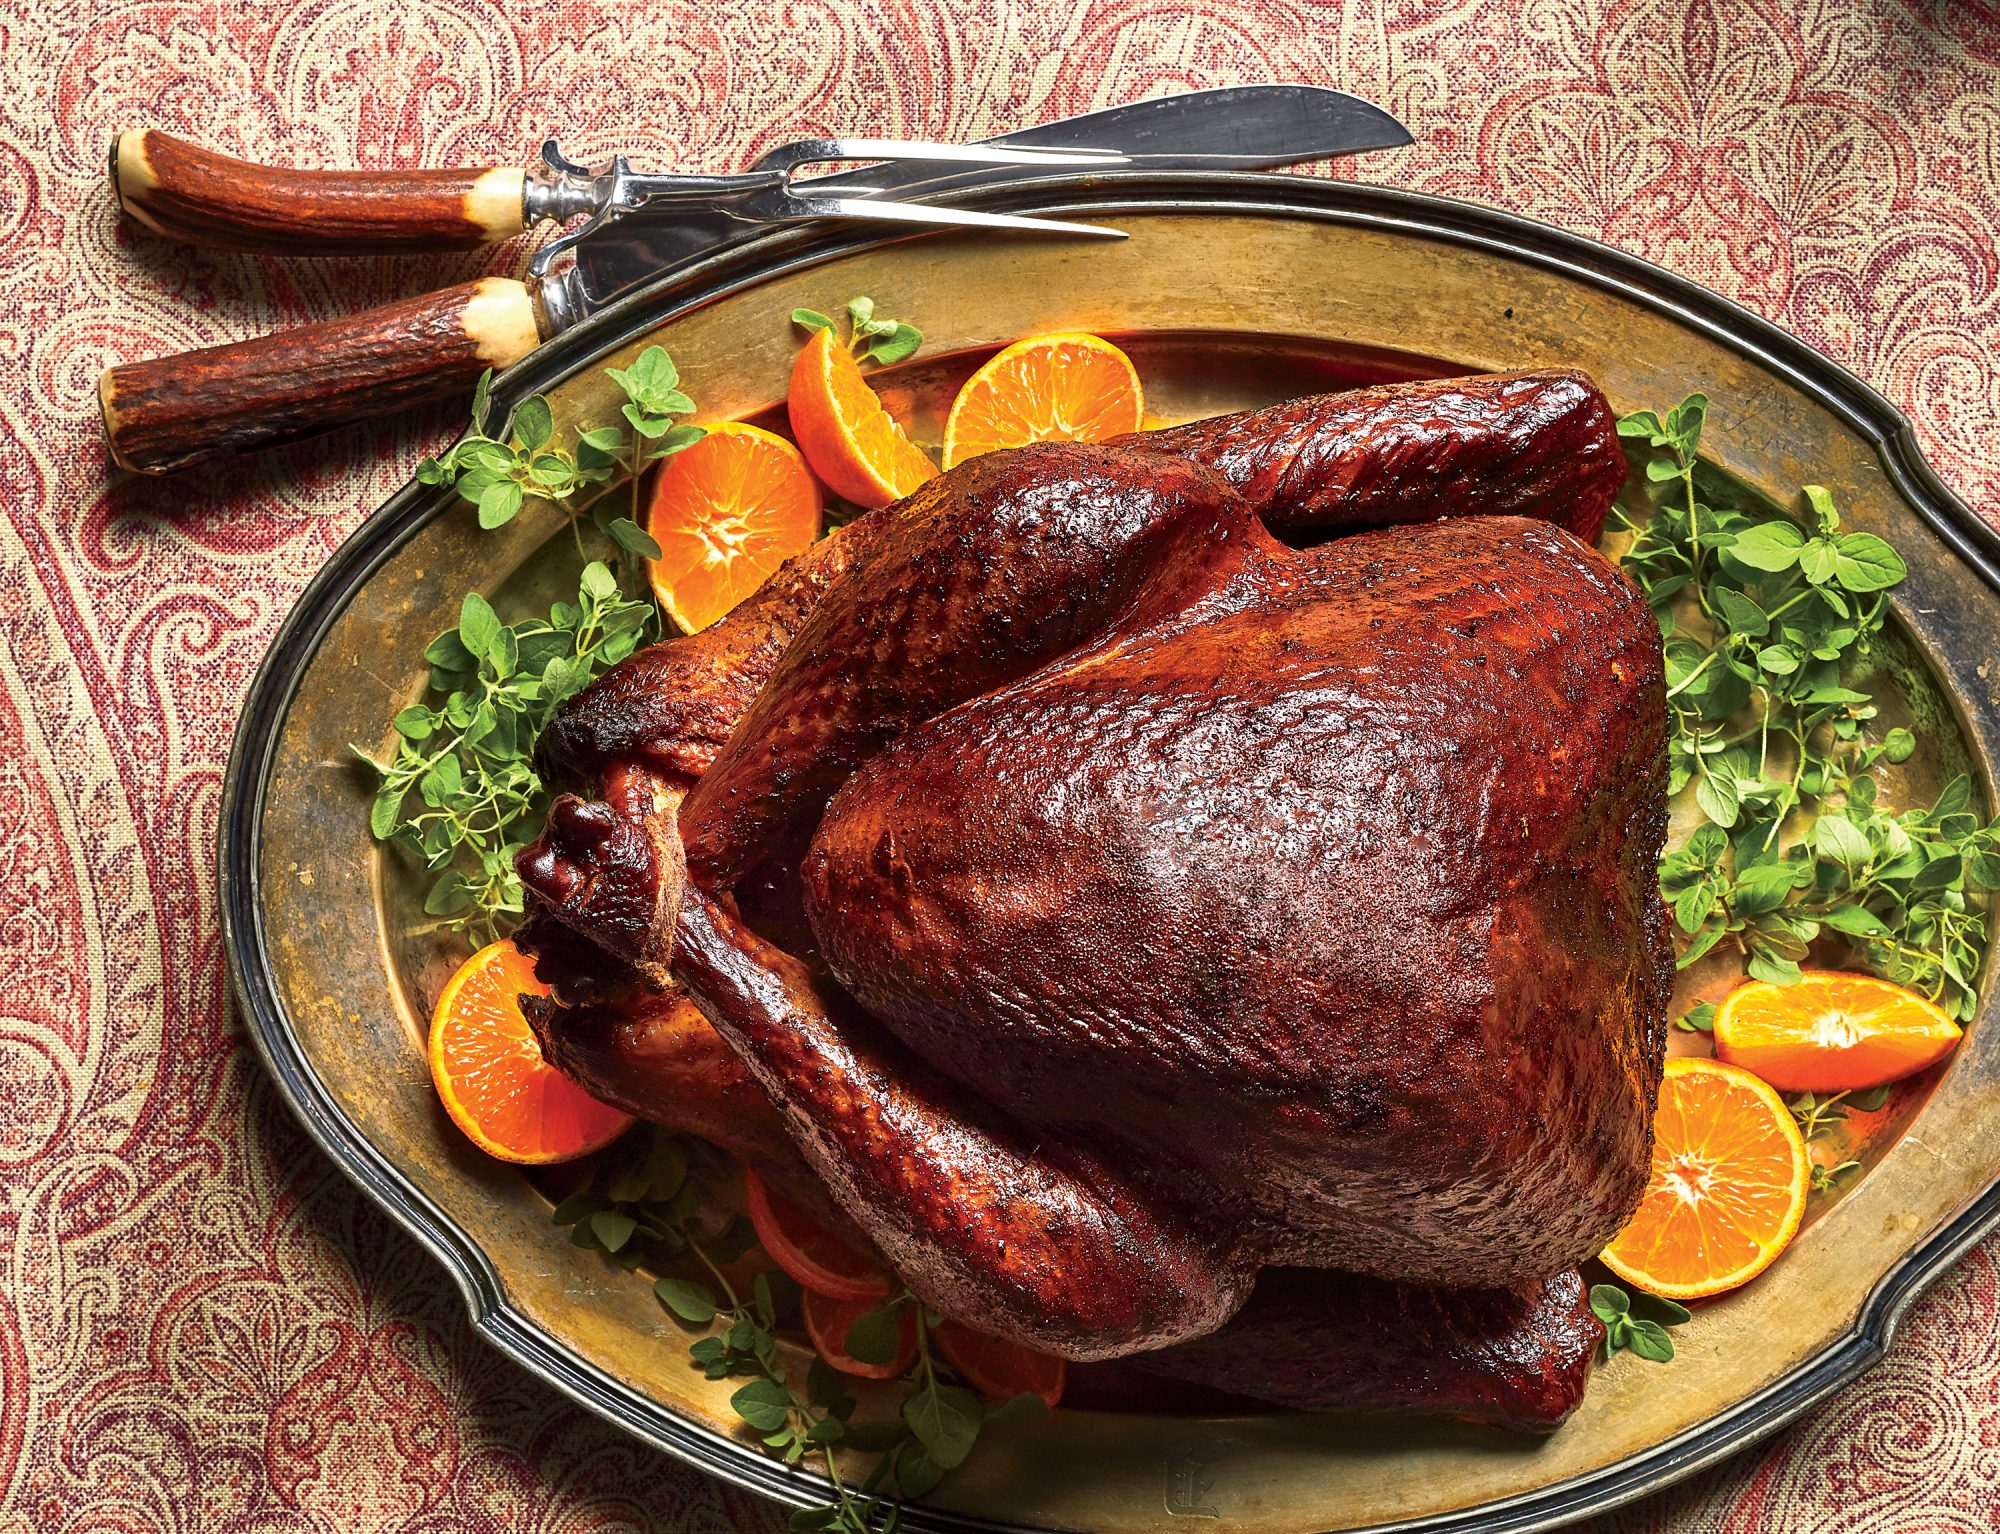 Cajun Smoked Turkey Recipe